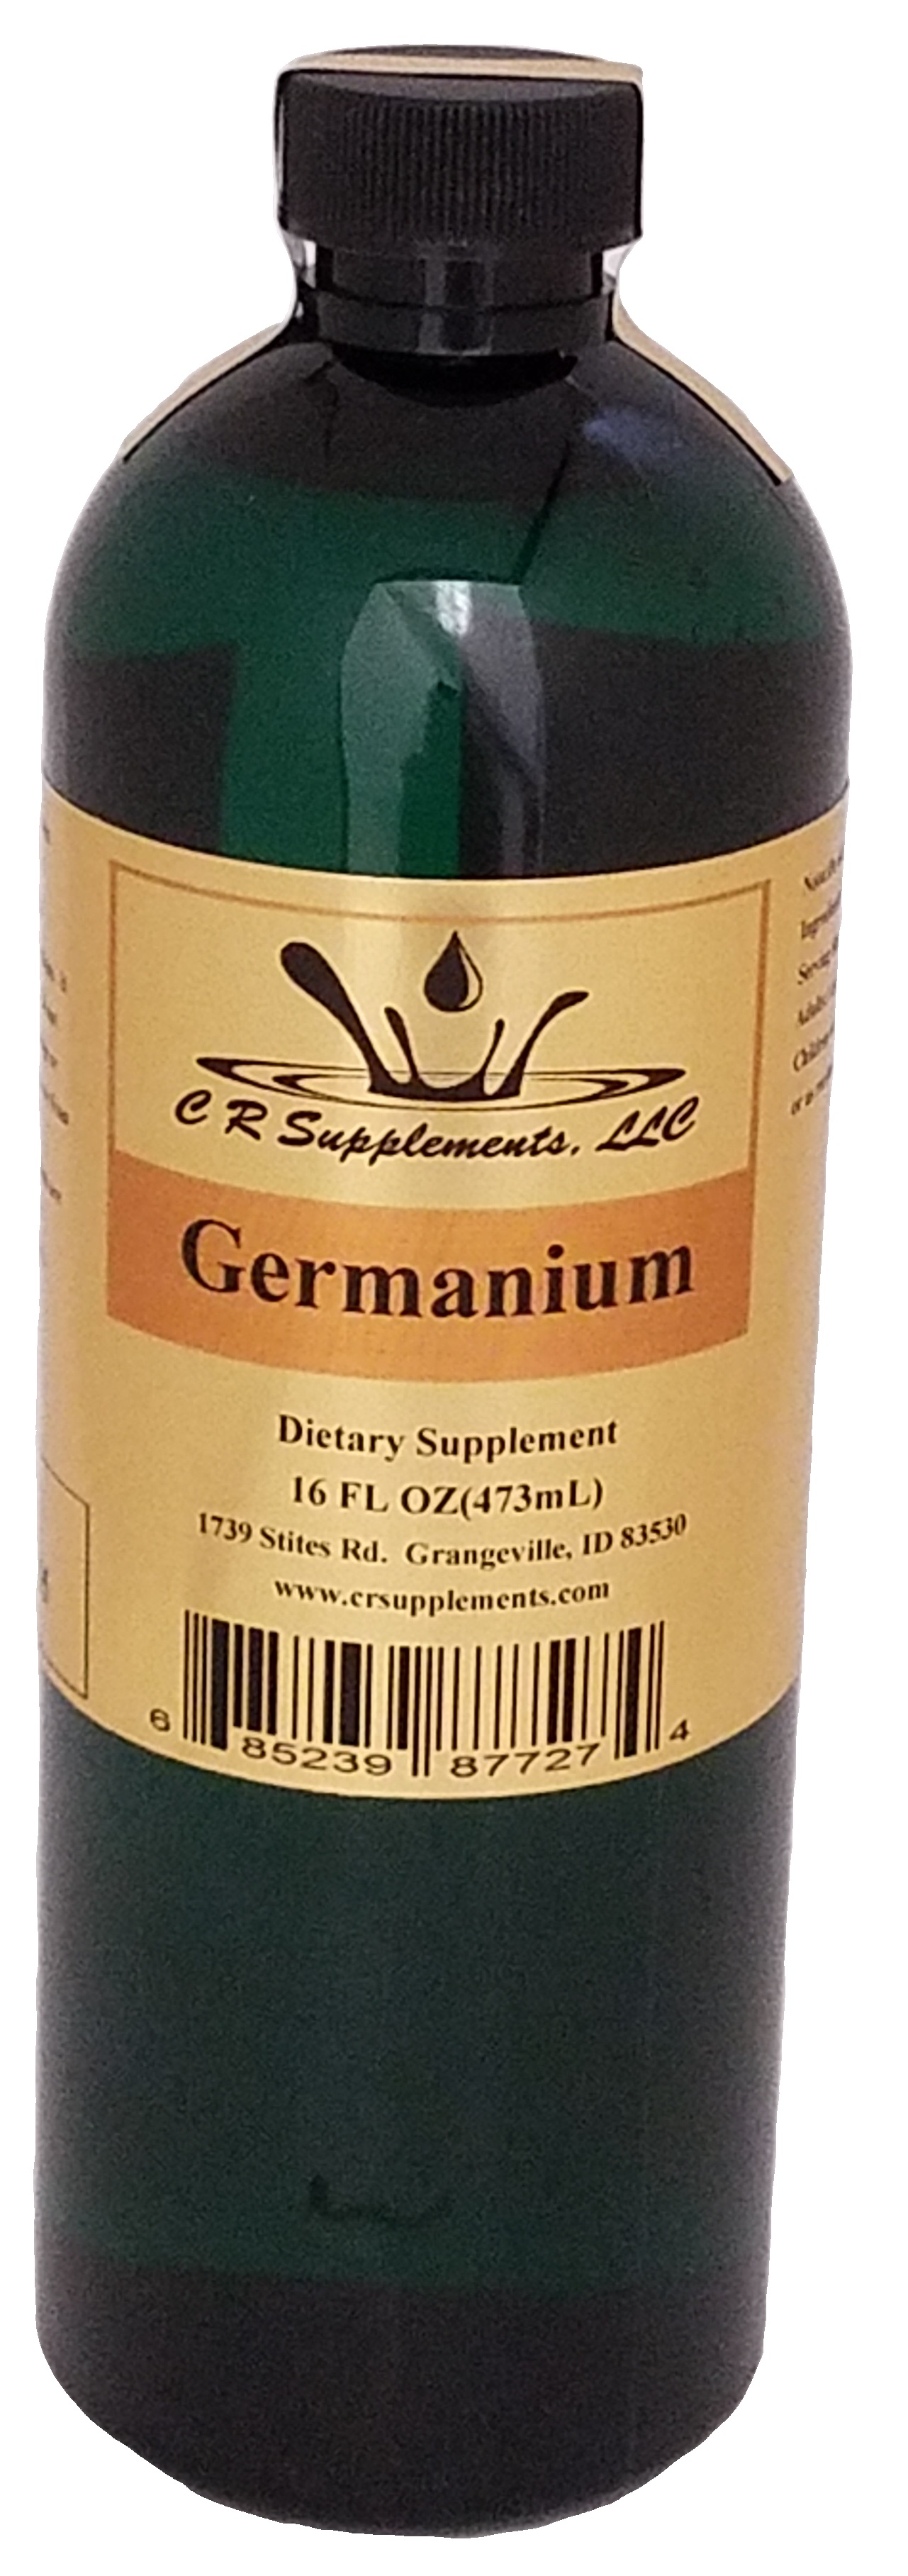 Germanium Dietary Supplement, Germanium, WaterOz Germanium Replacement, Liquid dietary supplement, Kosher of America approved, KOA approved, Pareve, vegan application, elemental mineral, flexible liquid mineral, maximum absorption